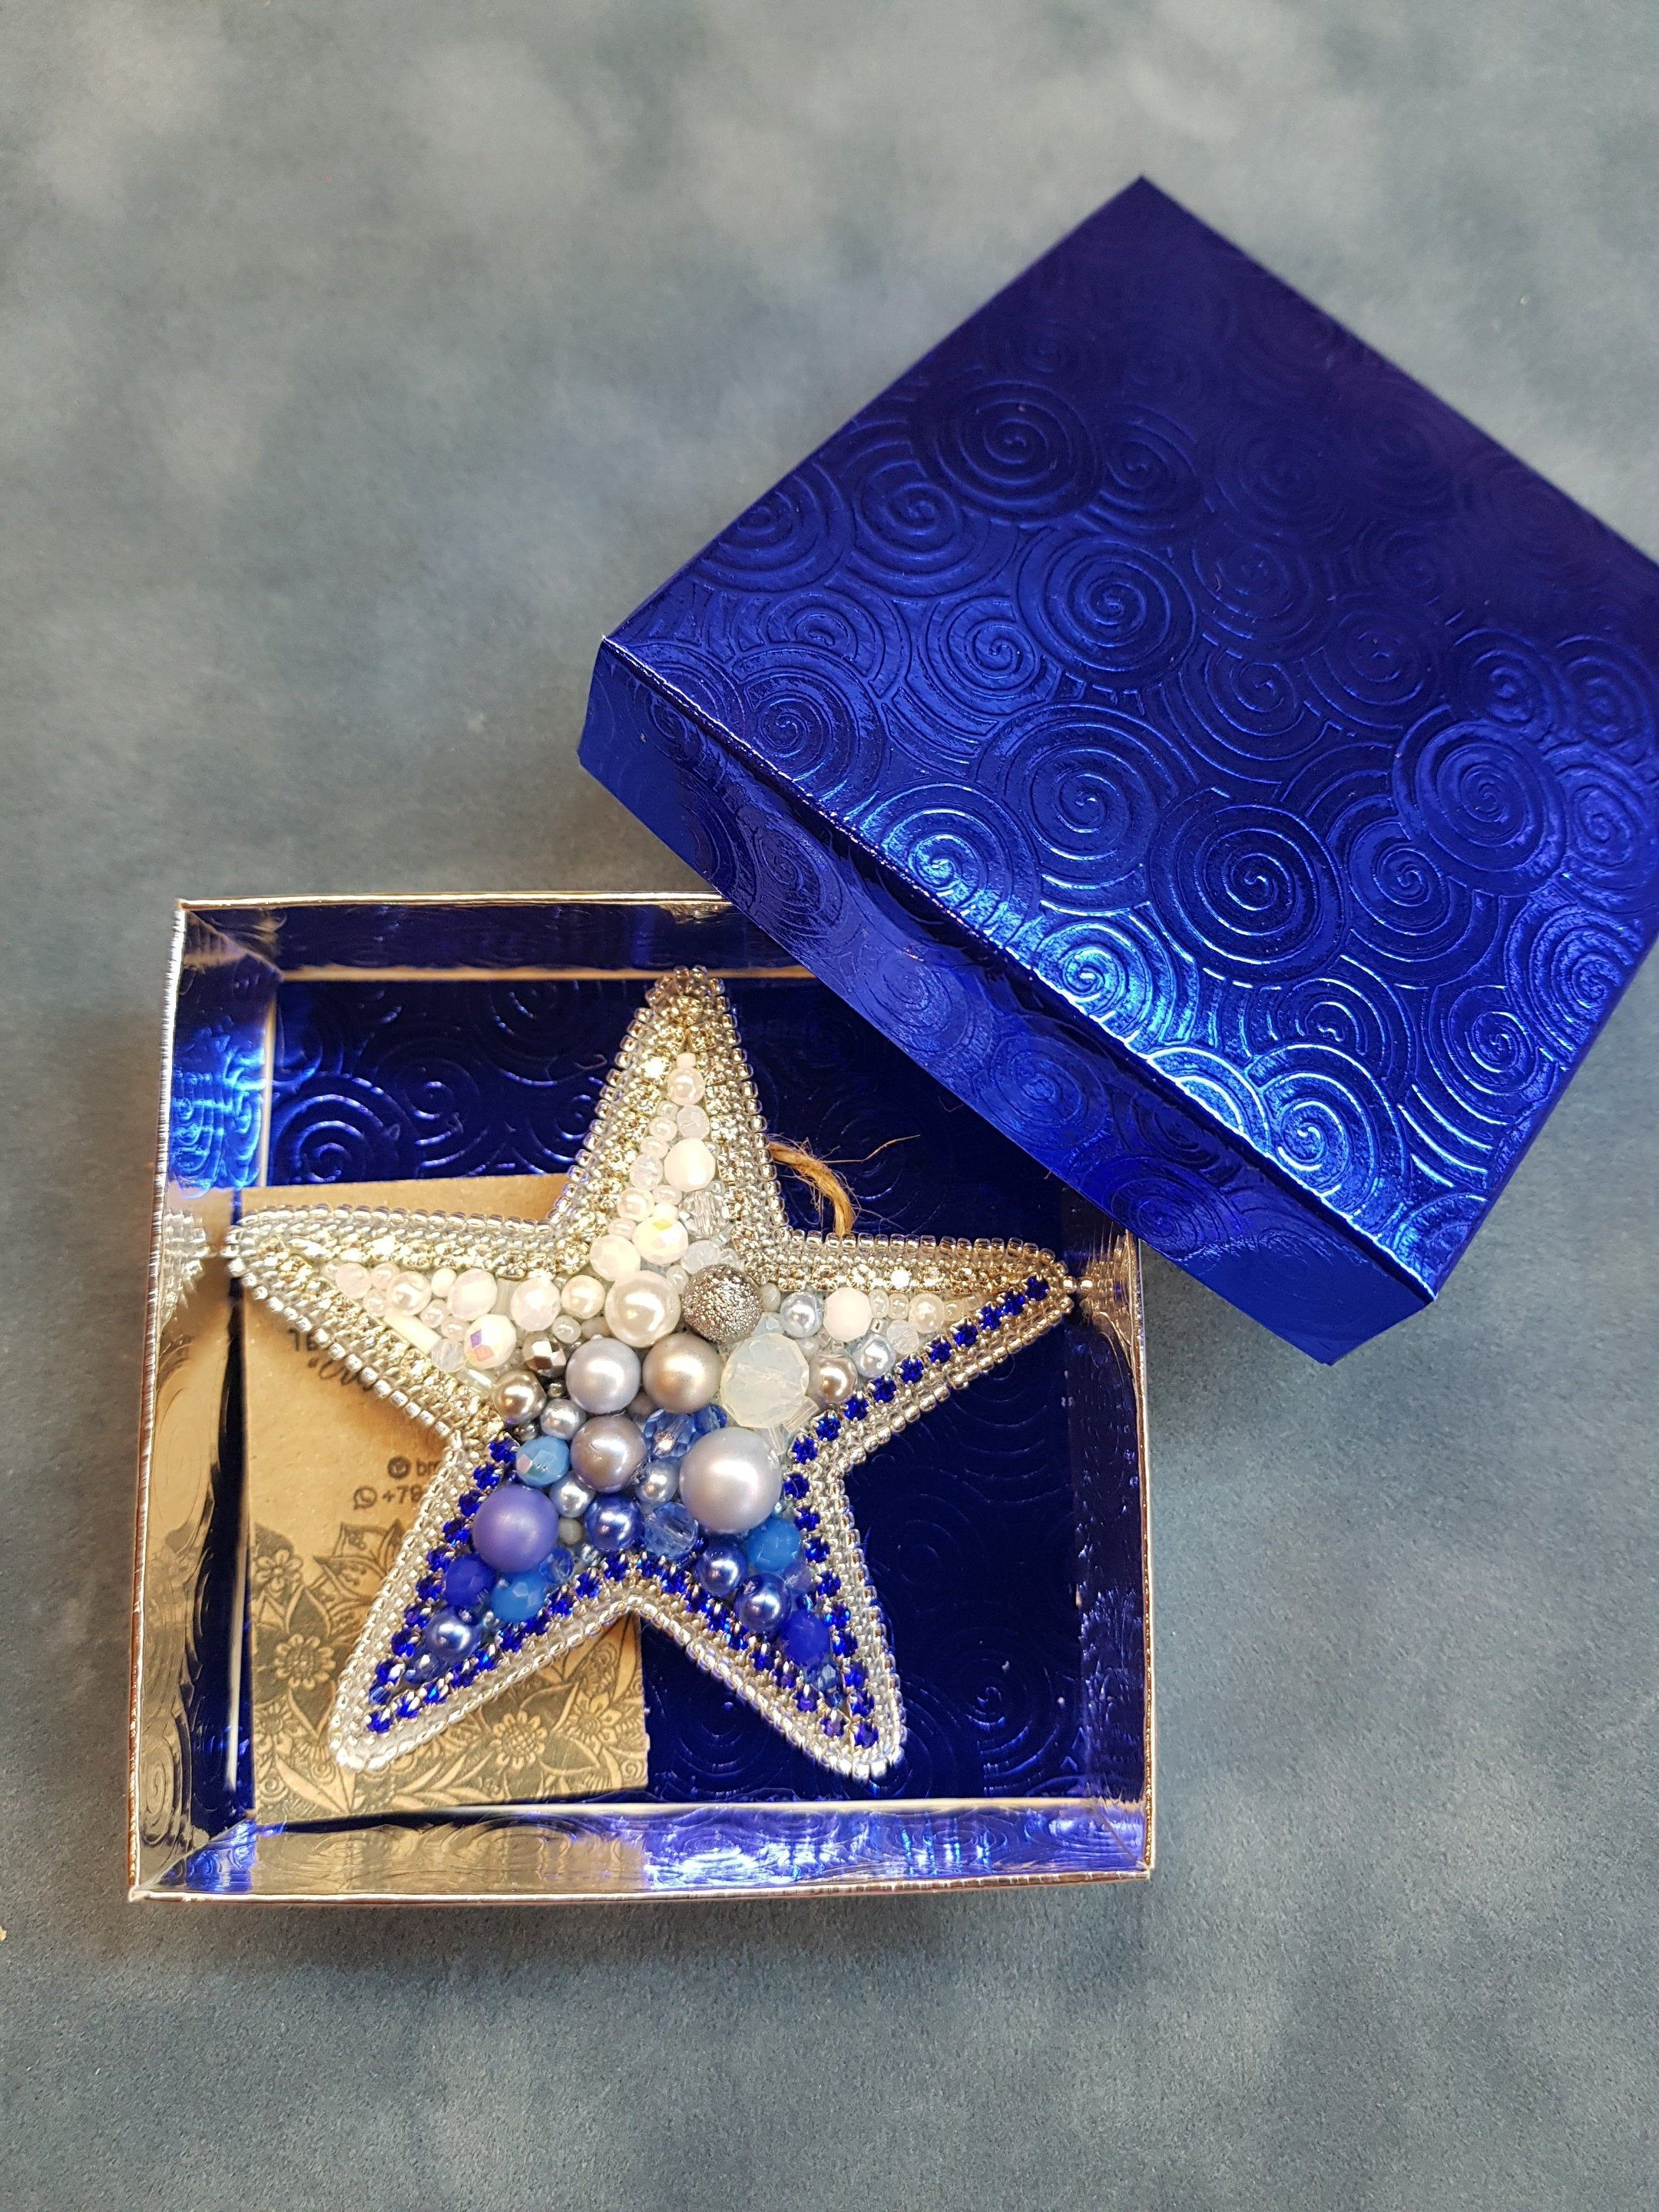 Sea starblue star brooch embroidered brooch for royal